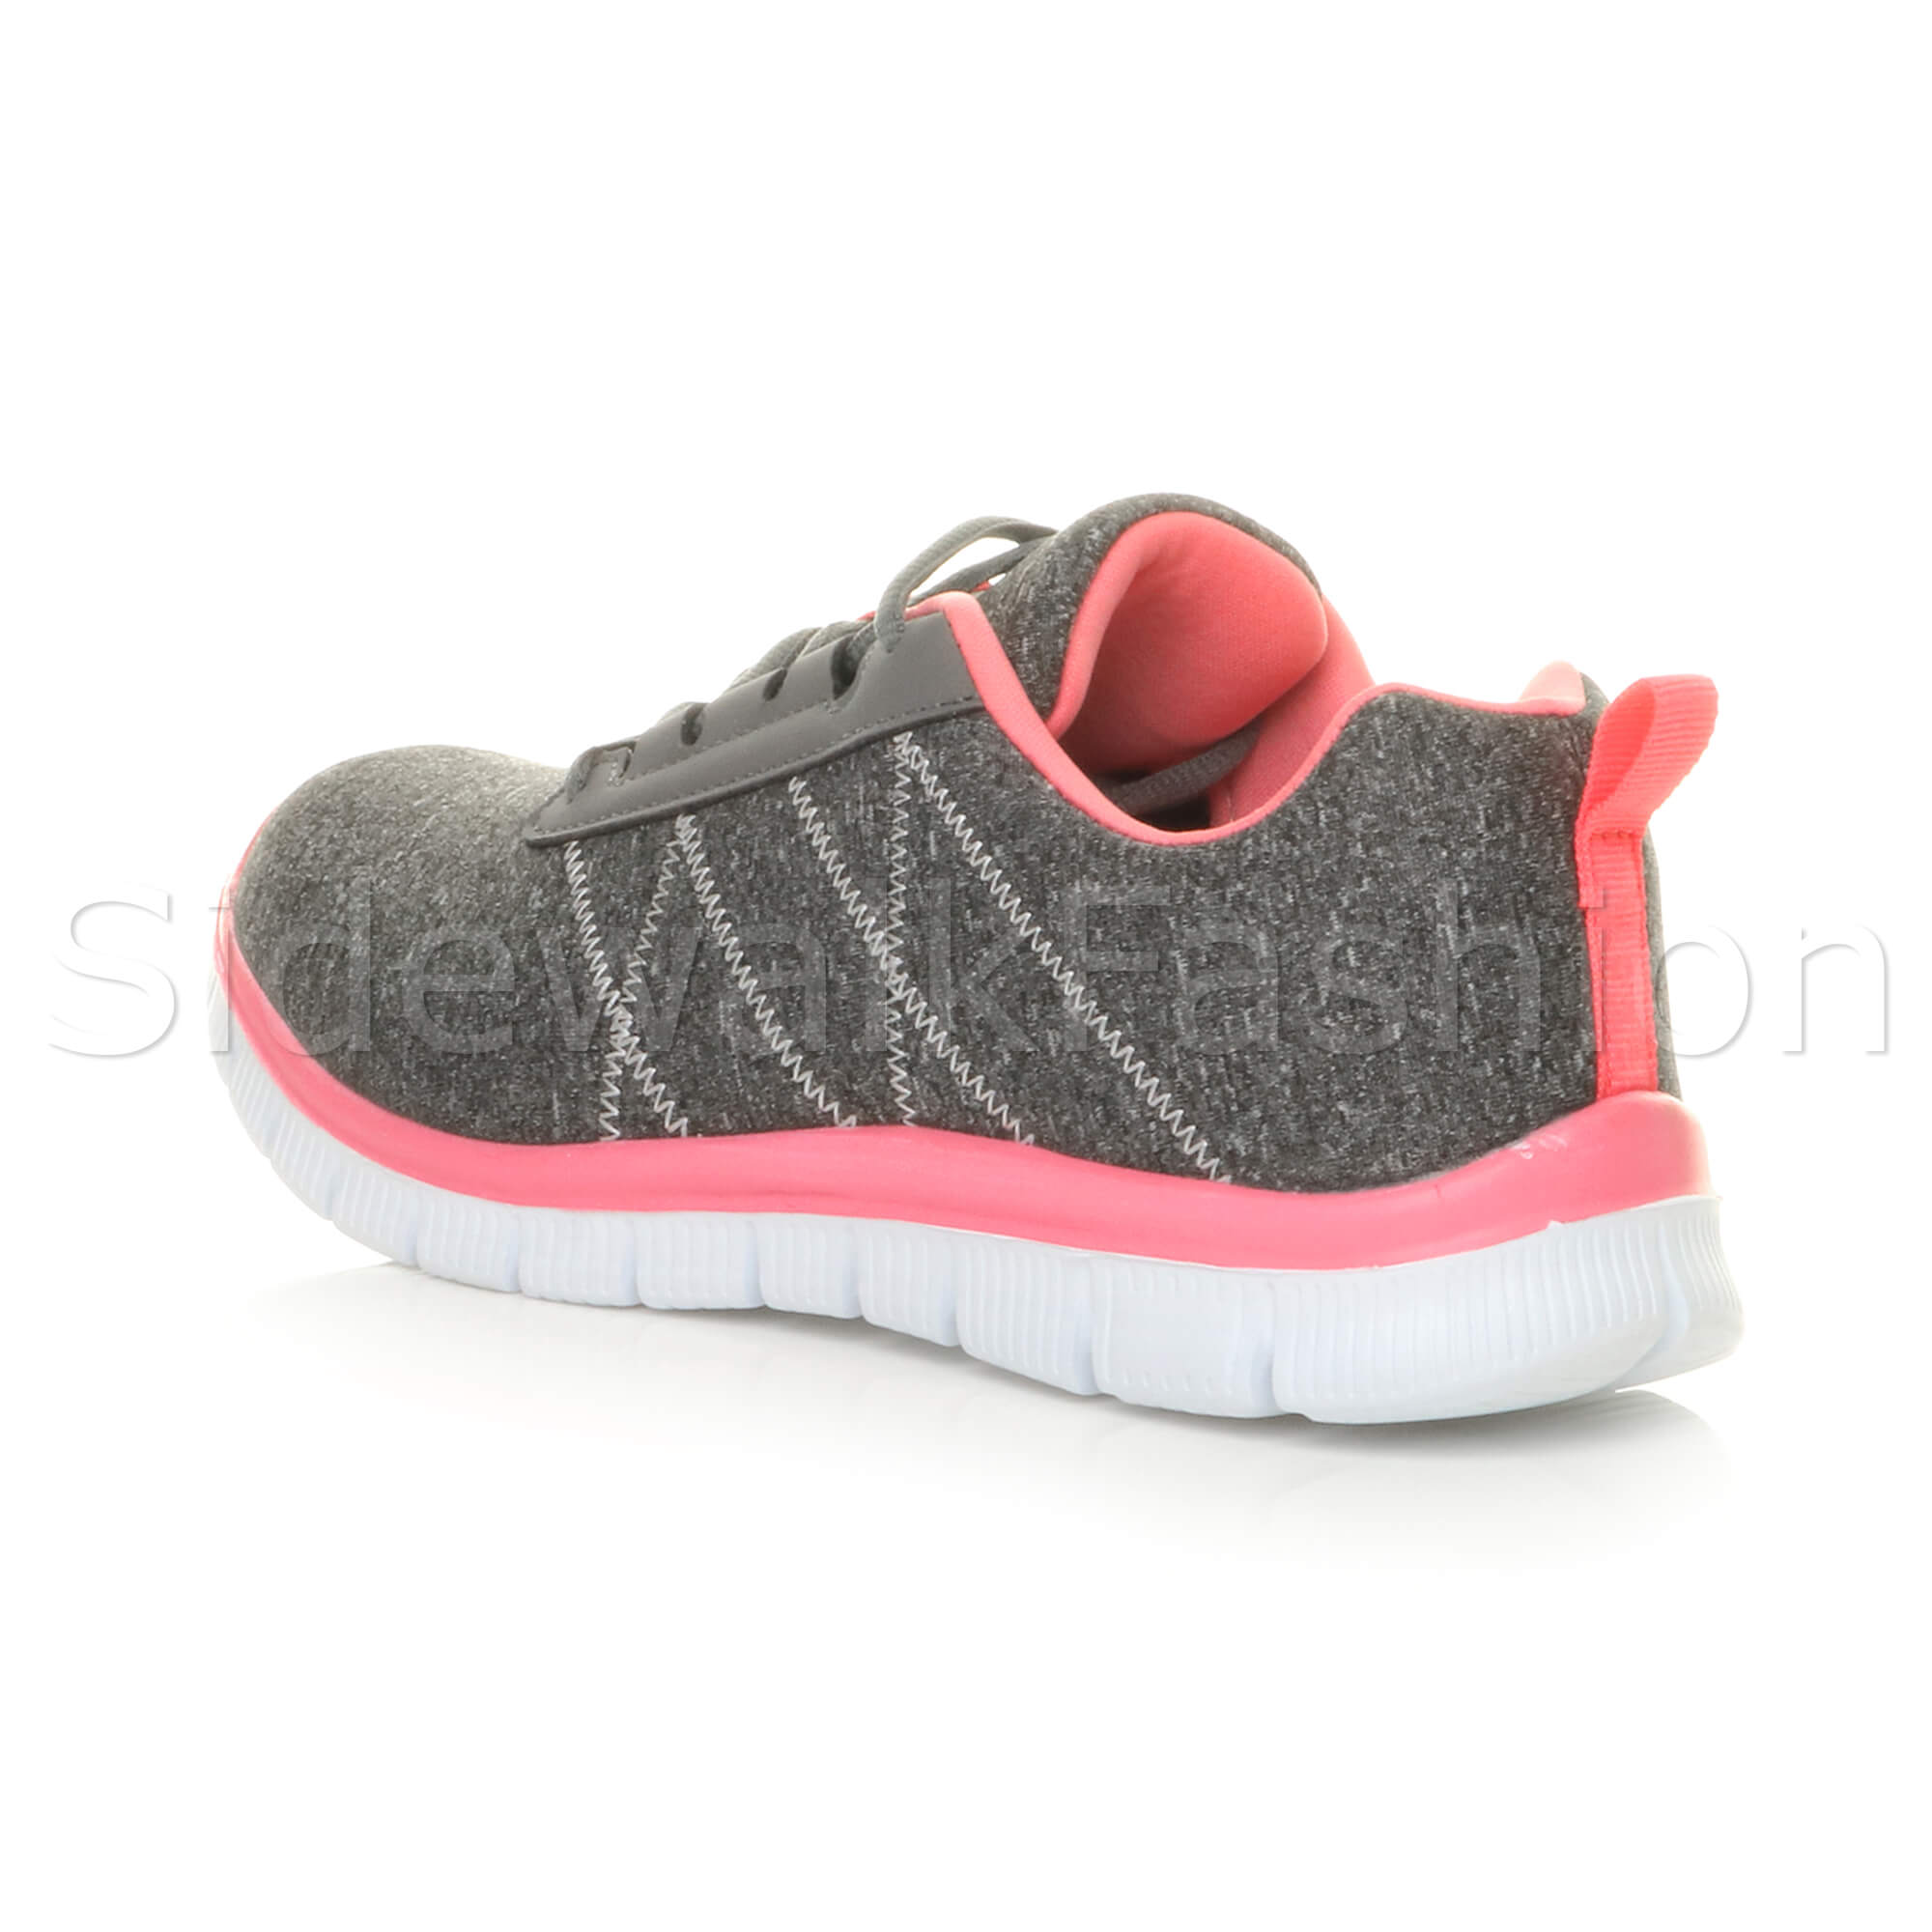 Womens-ladies-comfort-memory-foam-lace-up-trainers-activewear-sneakers-gym-shoes thumbnail 53